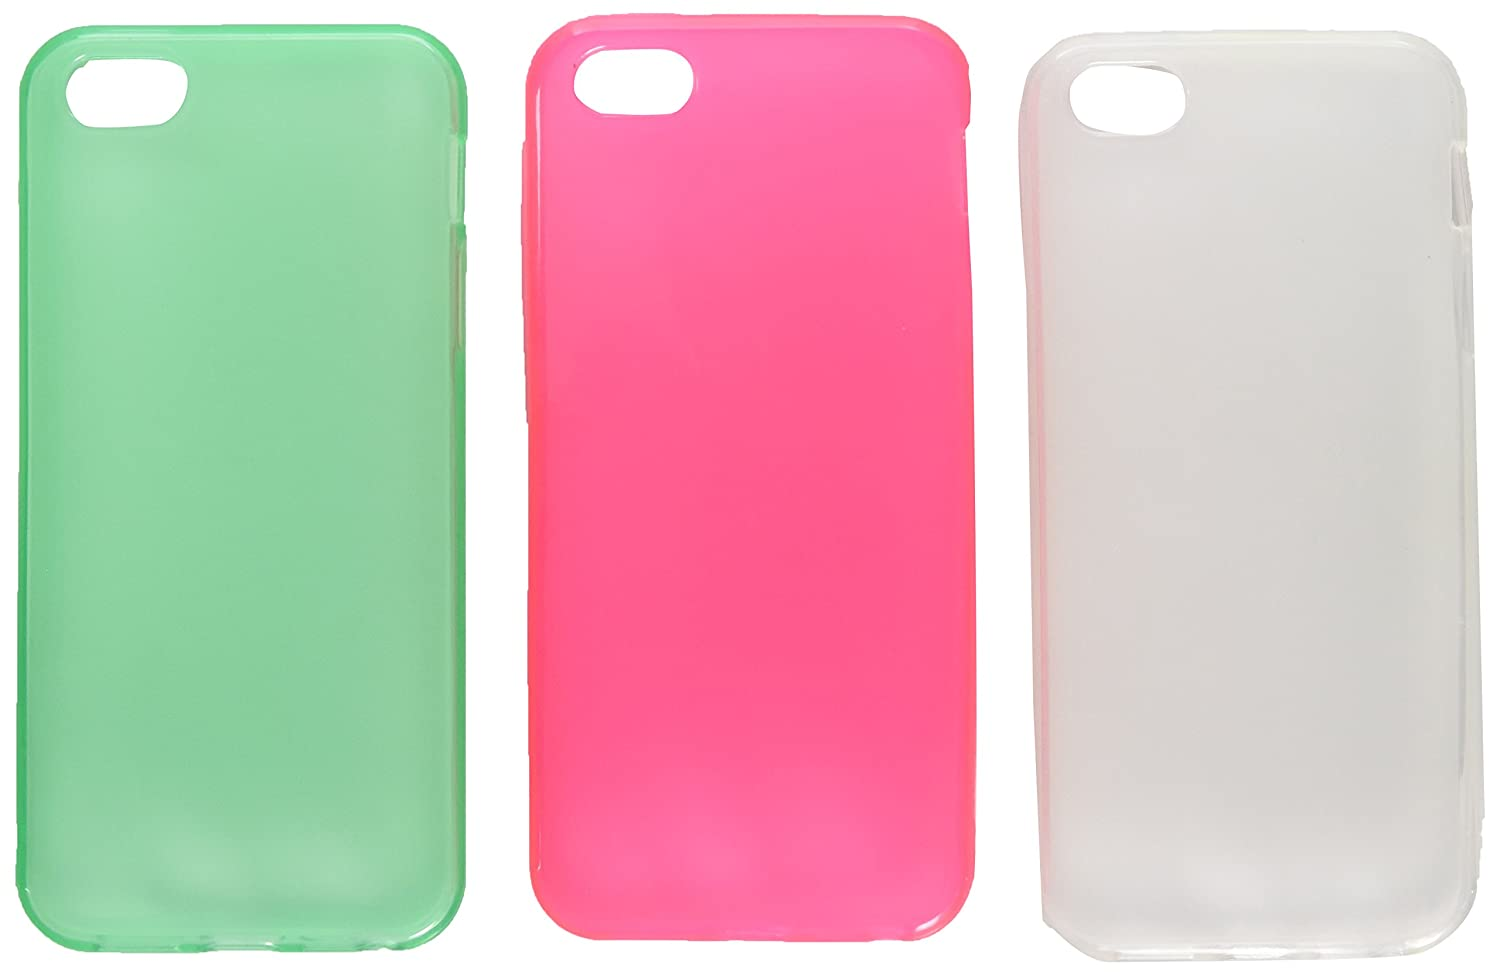 big sale 0b72f f0037 3 Pack TPU Rubber Case Combo Compatible with Apple iPhone 5/5S - Retail  Packaging - Clear Hot Pink /Clear Neon Green